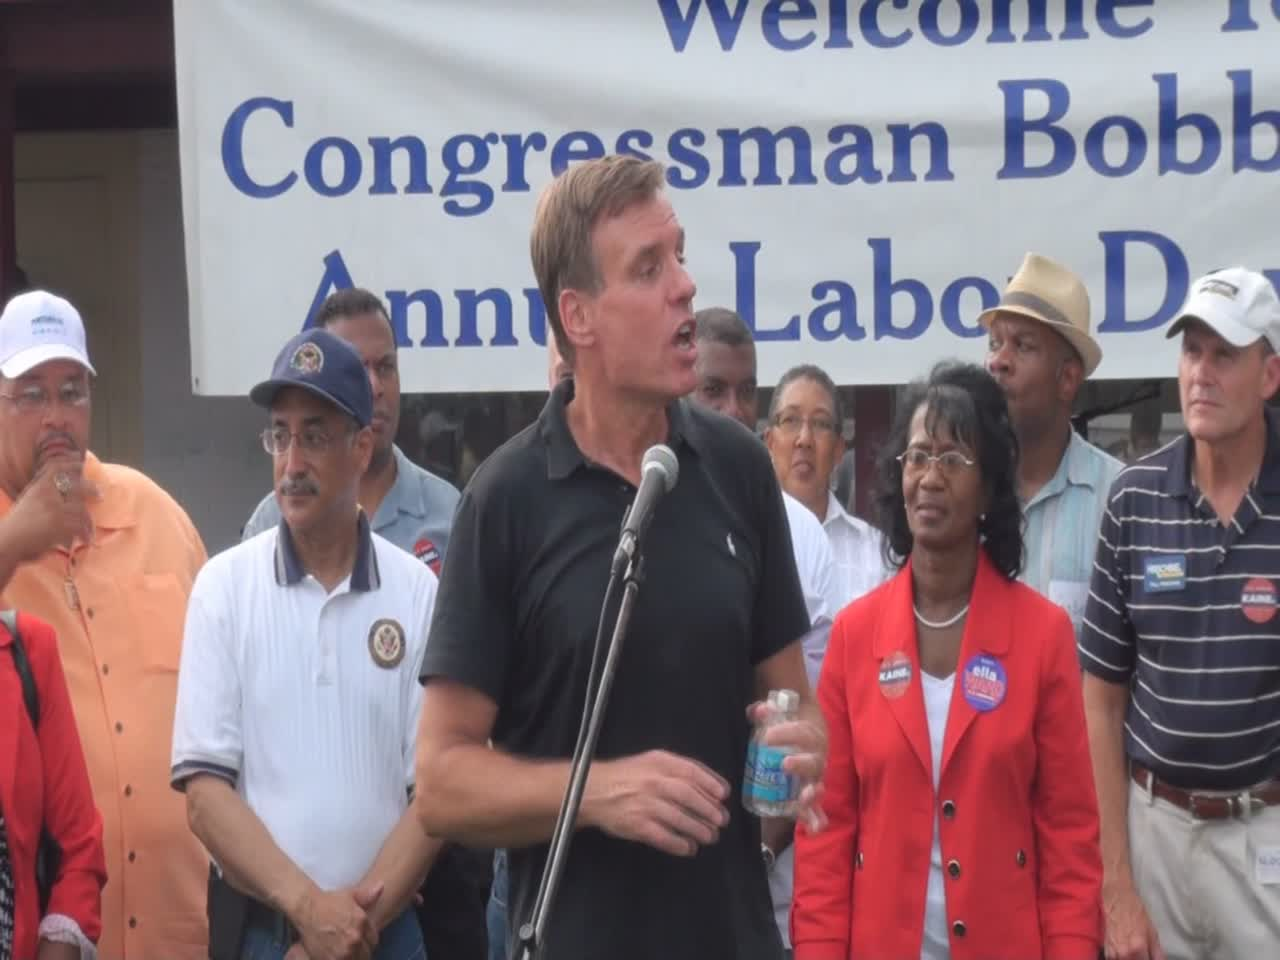 Mark Warner Labor Day 2012